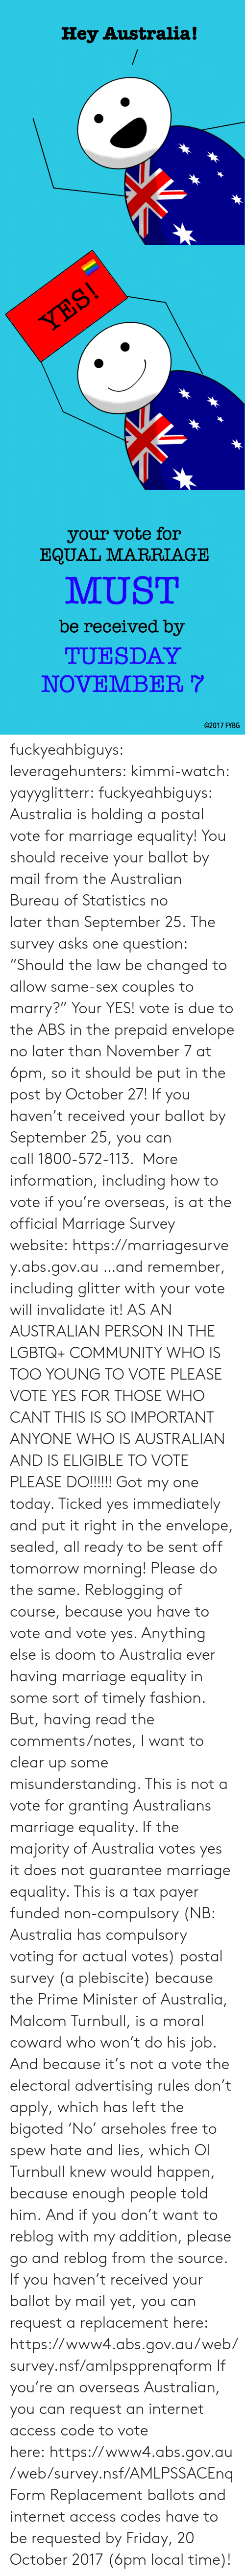 "compulsory: Hey Australia!   your vote for  EQUAL MARRIAGE  MUST  be received by  TUESDAY  NOVEMBER  02017 FYBG fuckyeahbiguys:  leveragehunters:  kimmi-watch:  yayyglitterr:  fuckyeahbiguys:  Australia is holding a postal vote for marriage equality! You should receive your ballot by mail from the Australian Bureau of Statistics no later than September 25. The survey asks one question: ""Should the law be changed to allow same-sex couples to marry?"" Your YES! vote is due to the ABS in the prepaid envelope no later than November 7 at 6pm, so it should be put in the post by October 27! If you haven't received your ballot by September 25, you can call 1800-572-113.  More information, including how to vote if you're overseas, is at the official Marriage Survey website: https://marriagesurvey.abs.gov.au …and remember, including glitter with your vote will invalidate it!  AS AN AUSTRALIAN PERSON IN THE LGBTQ+ COMMUNITY WHO IS TOO YOUNG TO VOTE PLEASE VOTE YES FOR THOSE WHO CANT THIS IS SO IMPORTANT ANYONE WHO IS AUSTRALIAN AND IS ELIGIBLE TO VOTE PLEASE DO!!!!!!  Got my one today. Ticked yes immediately and put it right in the envelope, sealed, all ready to be sent off tomorrow morning! Please do the same.  Reblogging of course, because you have to vote and vote yes. Anything else is doom to Australia ever having marriage equality in some sort of timely fashion. But, having read the comments/notes, I want to clear up some misunderstanding. This is not a vote for granting Australians marriage equality. If the majority of Australia votes yes it does not guarantee marriage equality. This is a tax payer funded non-compulsory (NB: Australia has compulsory voting for actual votes) postal survey (a plebiscite) because the Prime Minister of Australia, Malcom Turnbull, is a moral coward who won't do his job. And because it's not a vote the electoral advertising rules don't apply, which has left the bigoted 'No' arseholes free to spew hate and lies, which Ol Turnbull knew would happen, because enough people told him. And if you don't want to reblog with my addition, please go and reblog from the source.  If you haven't received your ballot by mail yet, you can request a replacement here: https://www4.abs.gov.au/web/survey.nsf/amlpspprenqform If you're an overseas Australian, you can request an internet access code to vote here: https://www4.abs.gov.au/web/survey.nsf/AMLPSSACEnqForm Replacement ballots and internet access codes have to be requested by Friday, 20 October 2017 (6pm local time)!"